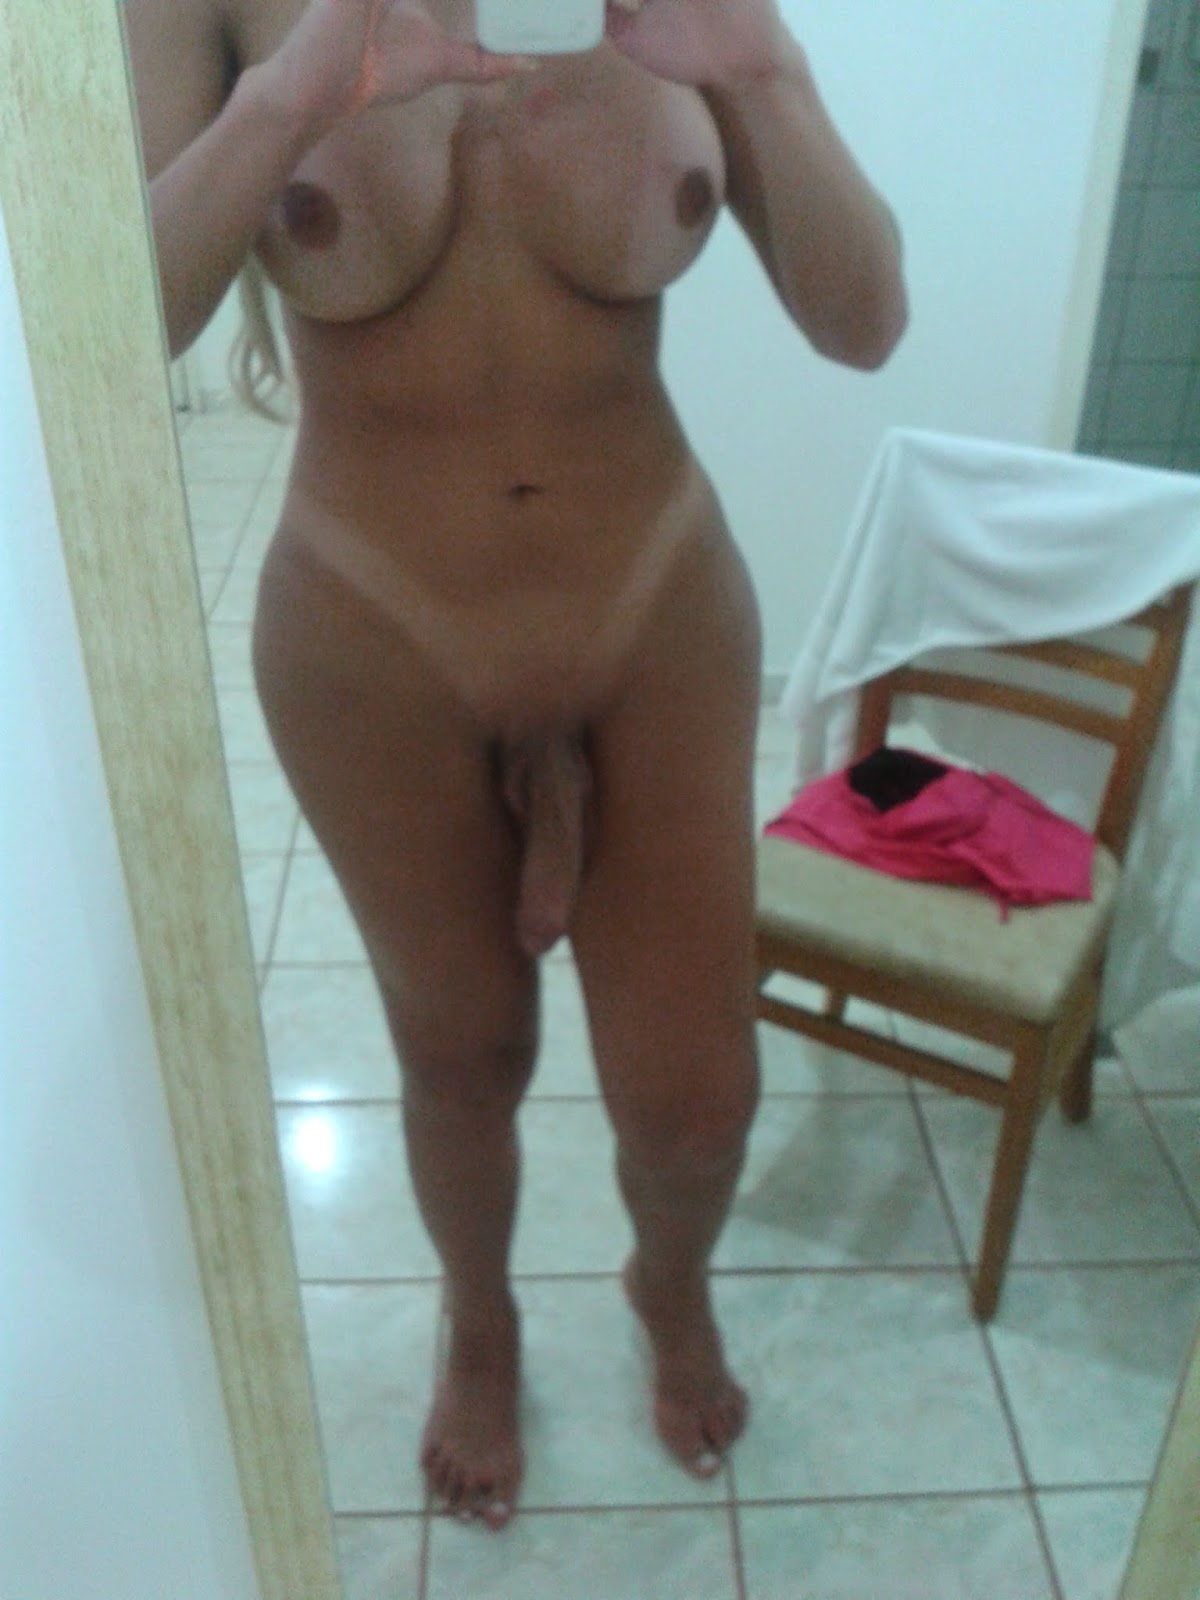 Busty Cock Lady Selfie in the Bathroom